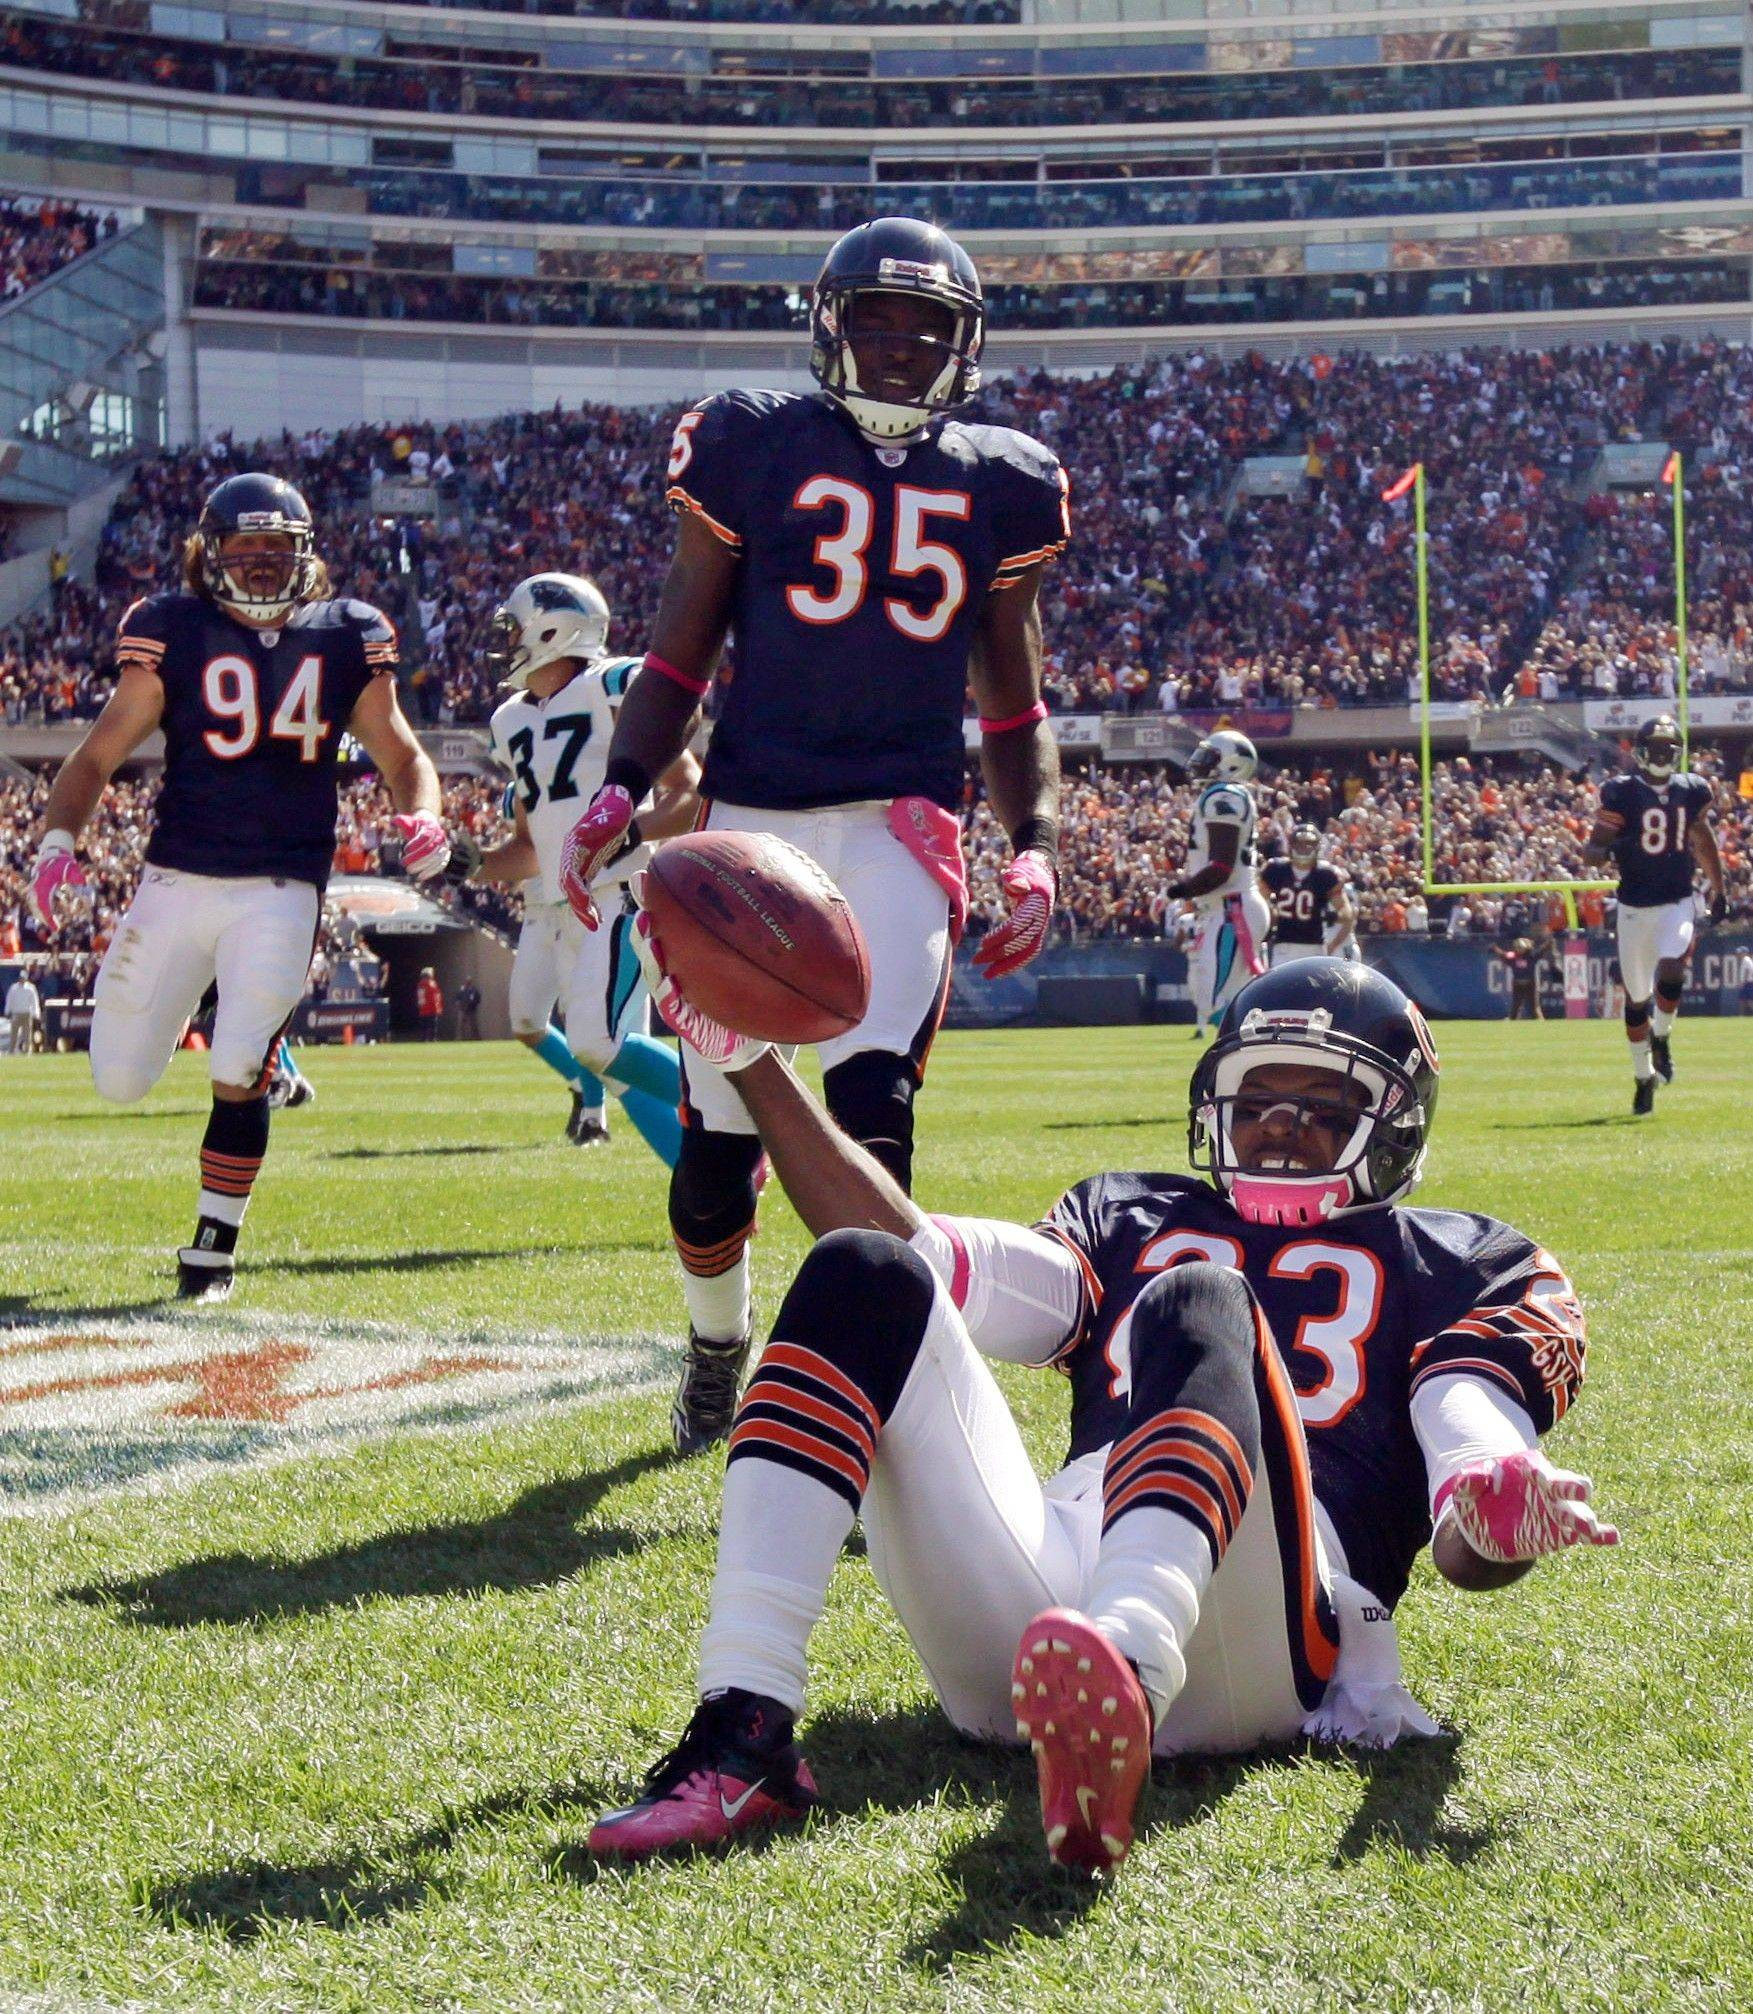 Bears kick returner Devin Hester somersaults into the end zone Sunday after returning a punt 69 yards for a touchdown against the Carolina Panthers at Soldier Field.